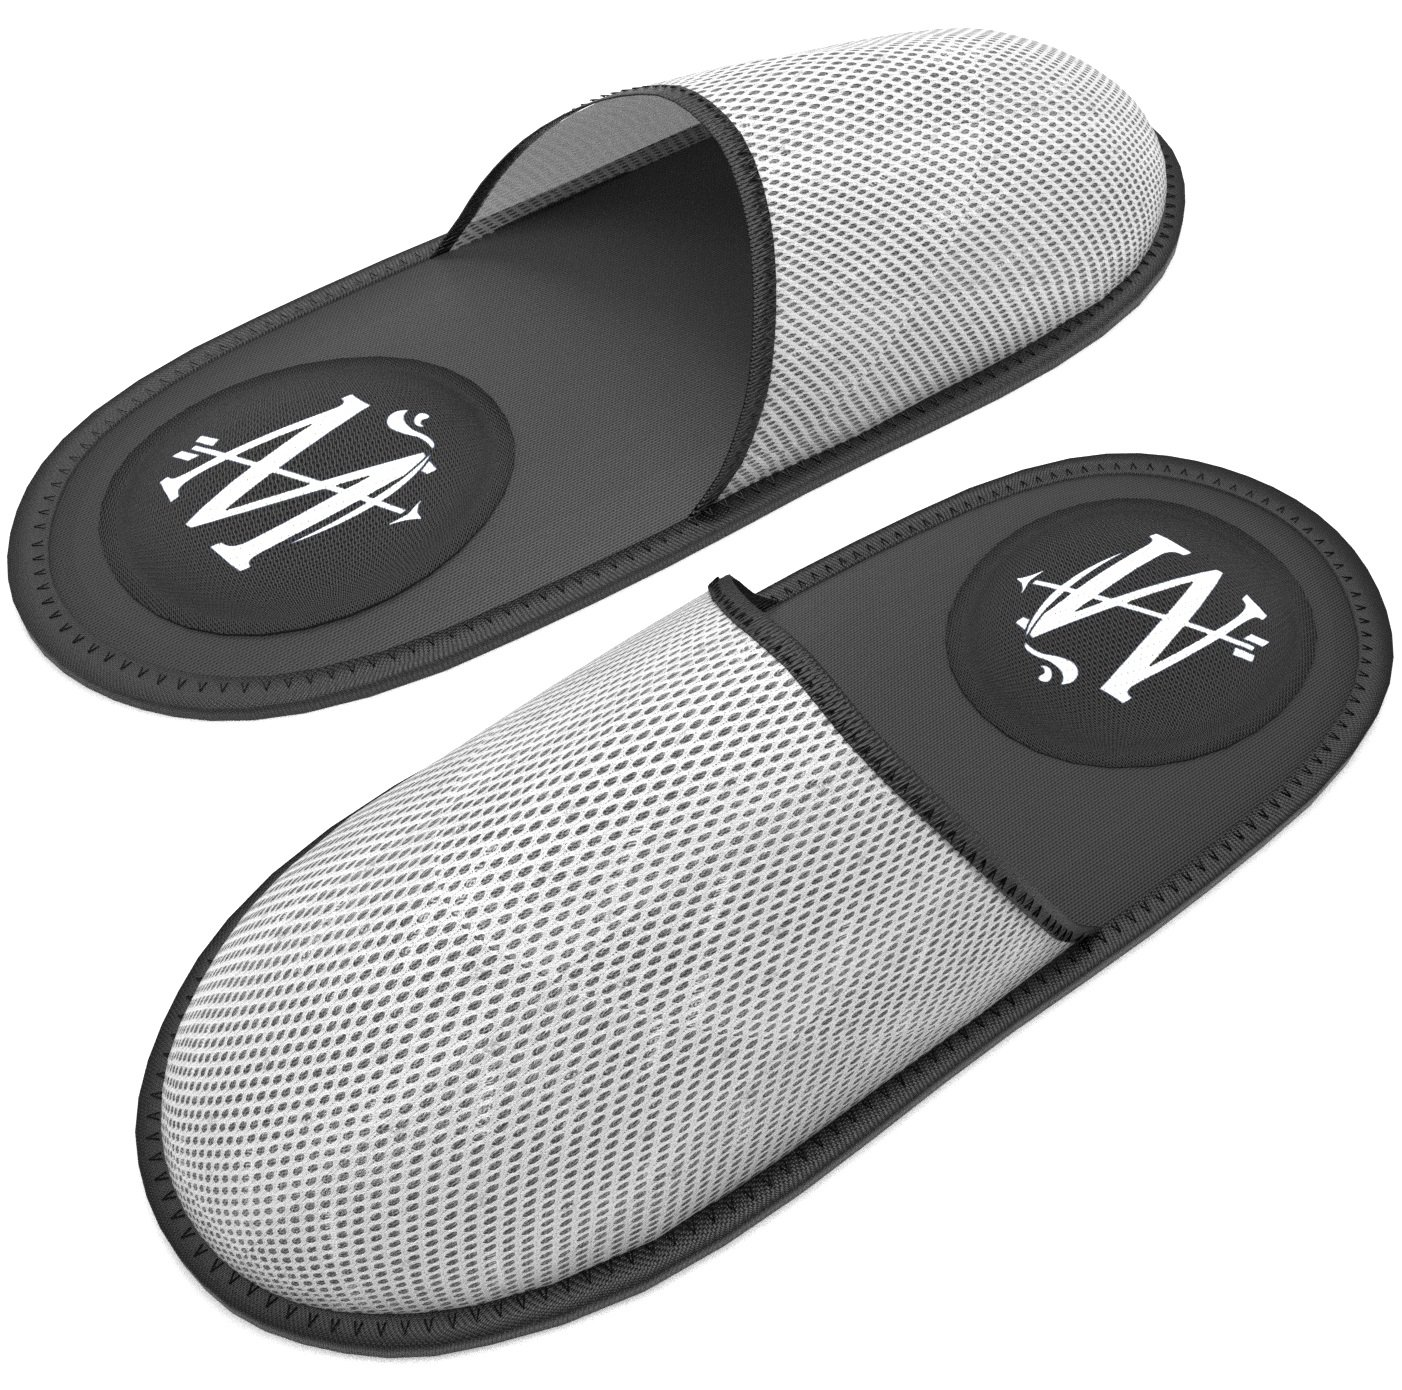 40b544a7b Foldable Slippers- DefenderX Fashion Lightweight Portable Massage Travel  Swimming Beach Reflexology Sandals Shoes For Holiday